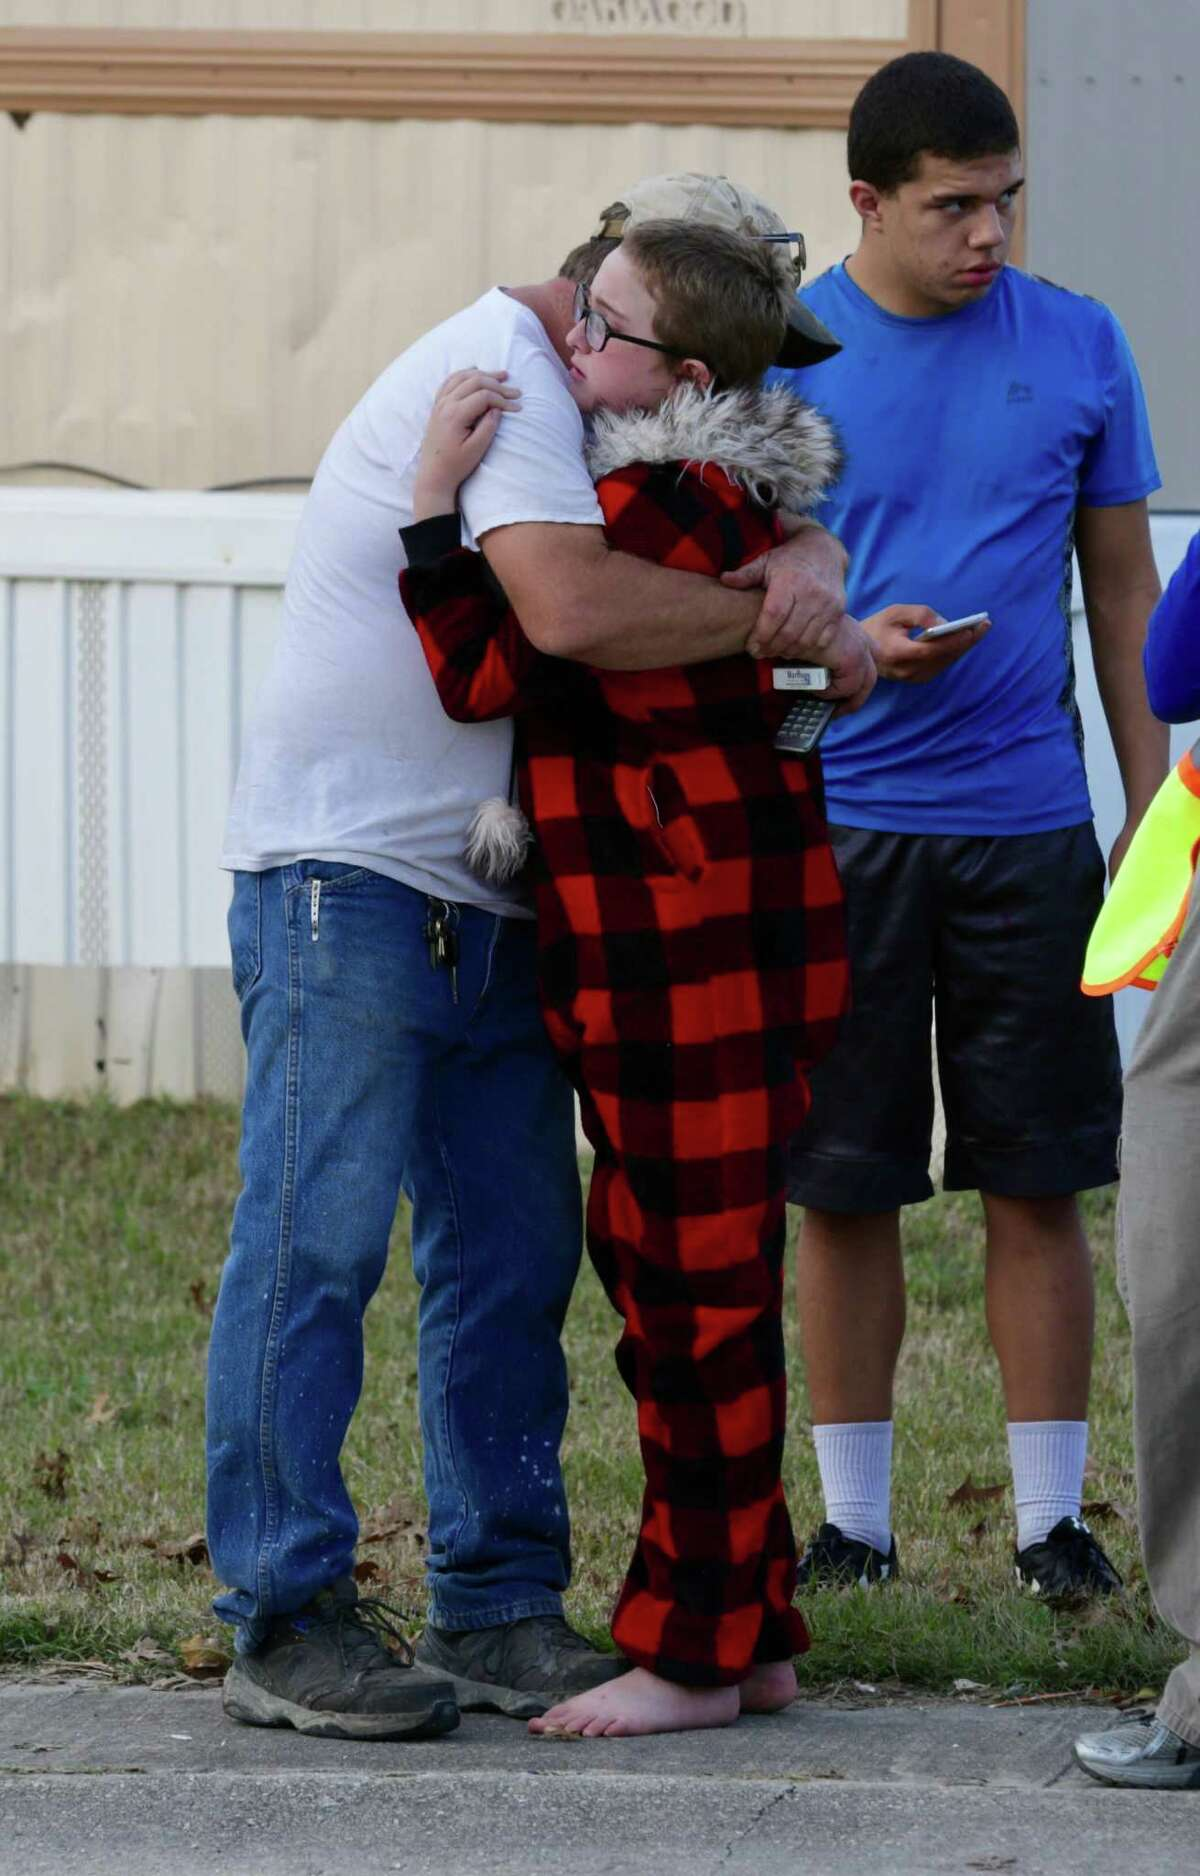 Ron Lawrence, left, comforts his daughter Kallie Lawrence, 11, who knew 6-year old Kameron Prescott. Kameron was killed by Bexar County sheriff's deputies when they were firing at a suspect, Amanda Jones, in the Pecan Grove trailer park in Schertz on Dec. 21, 2017.